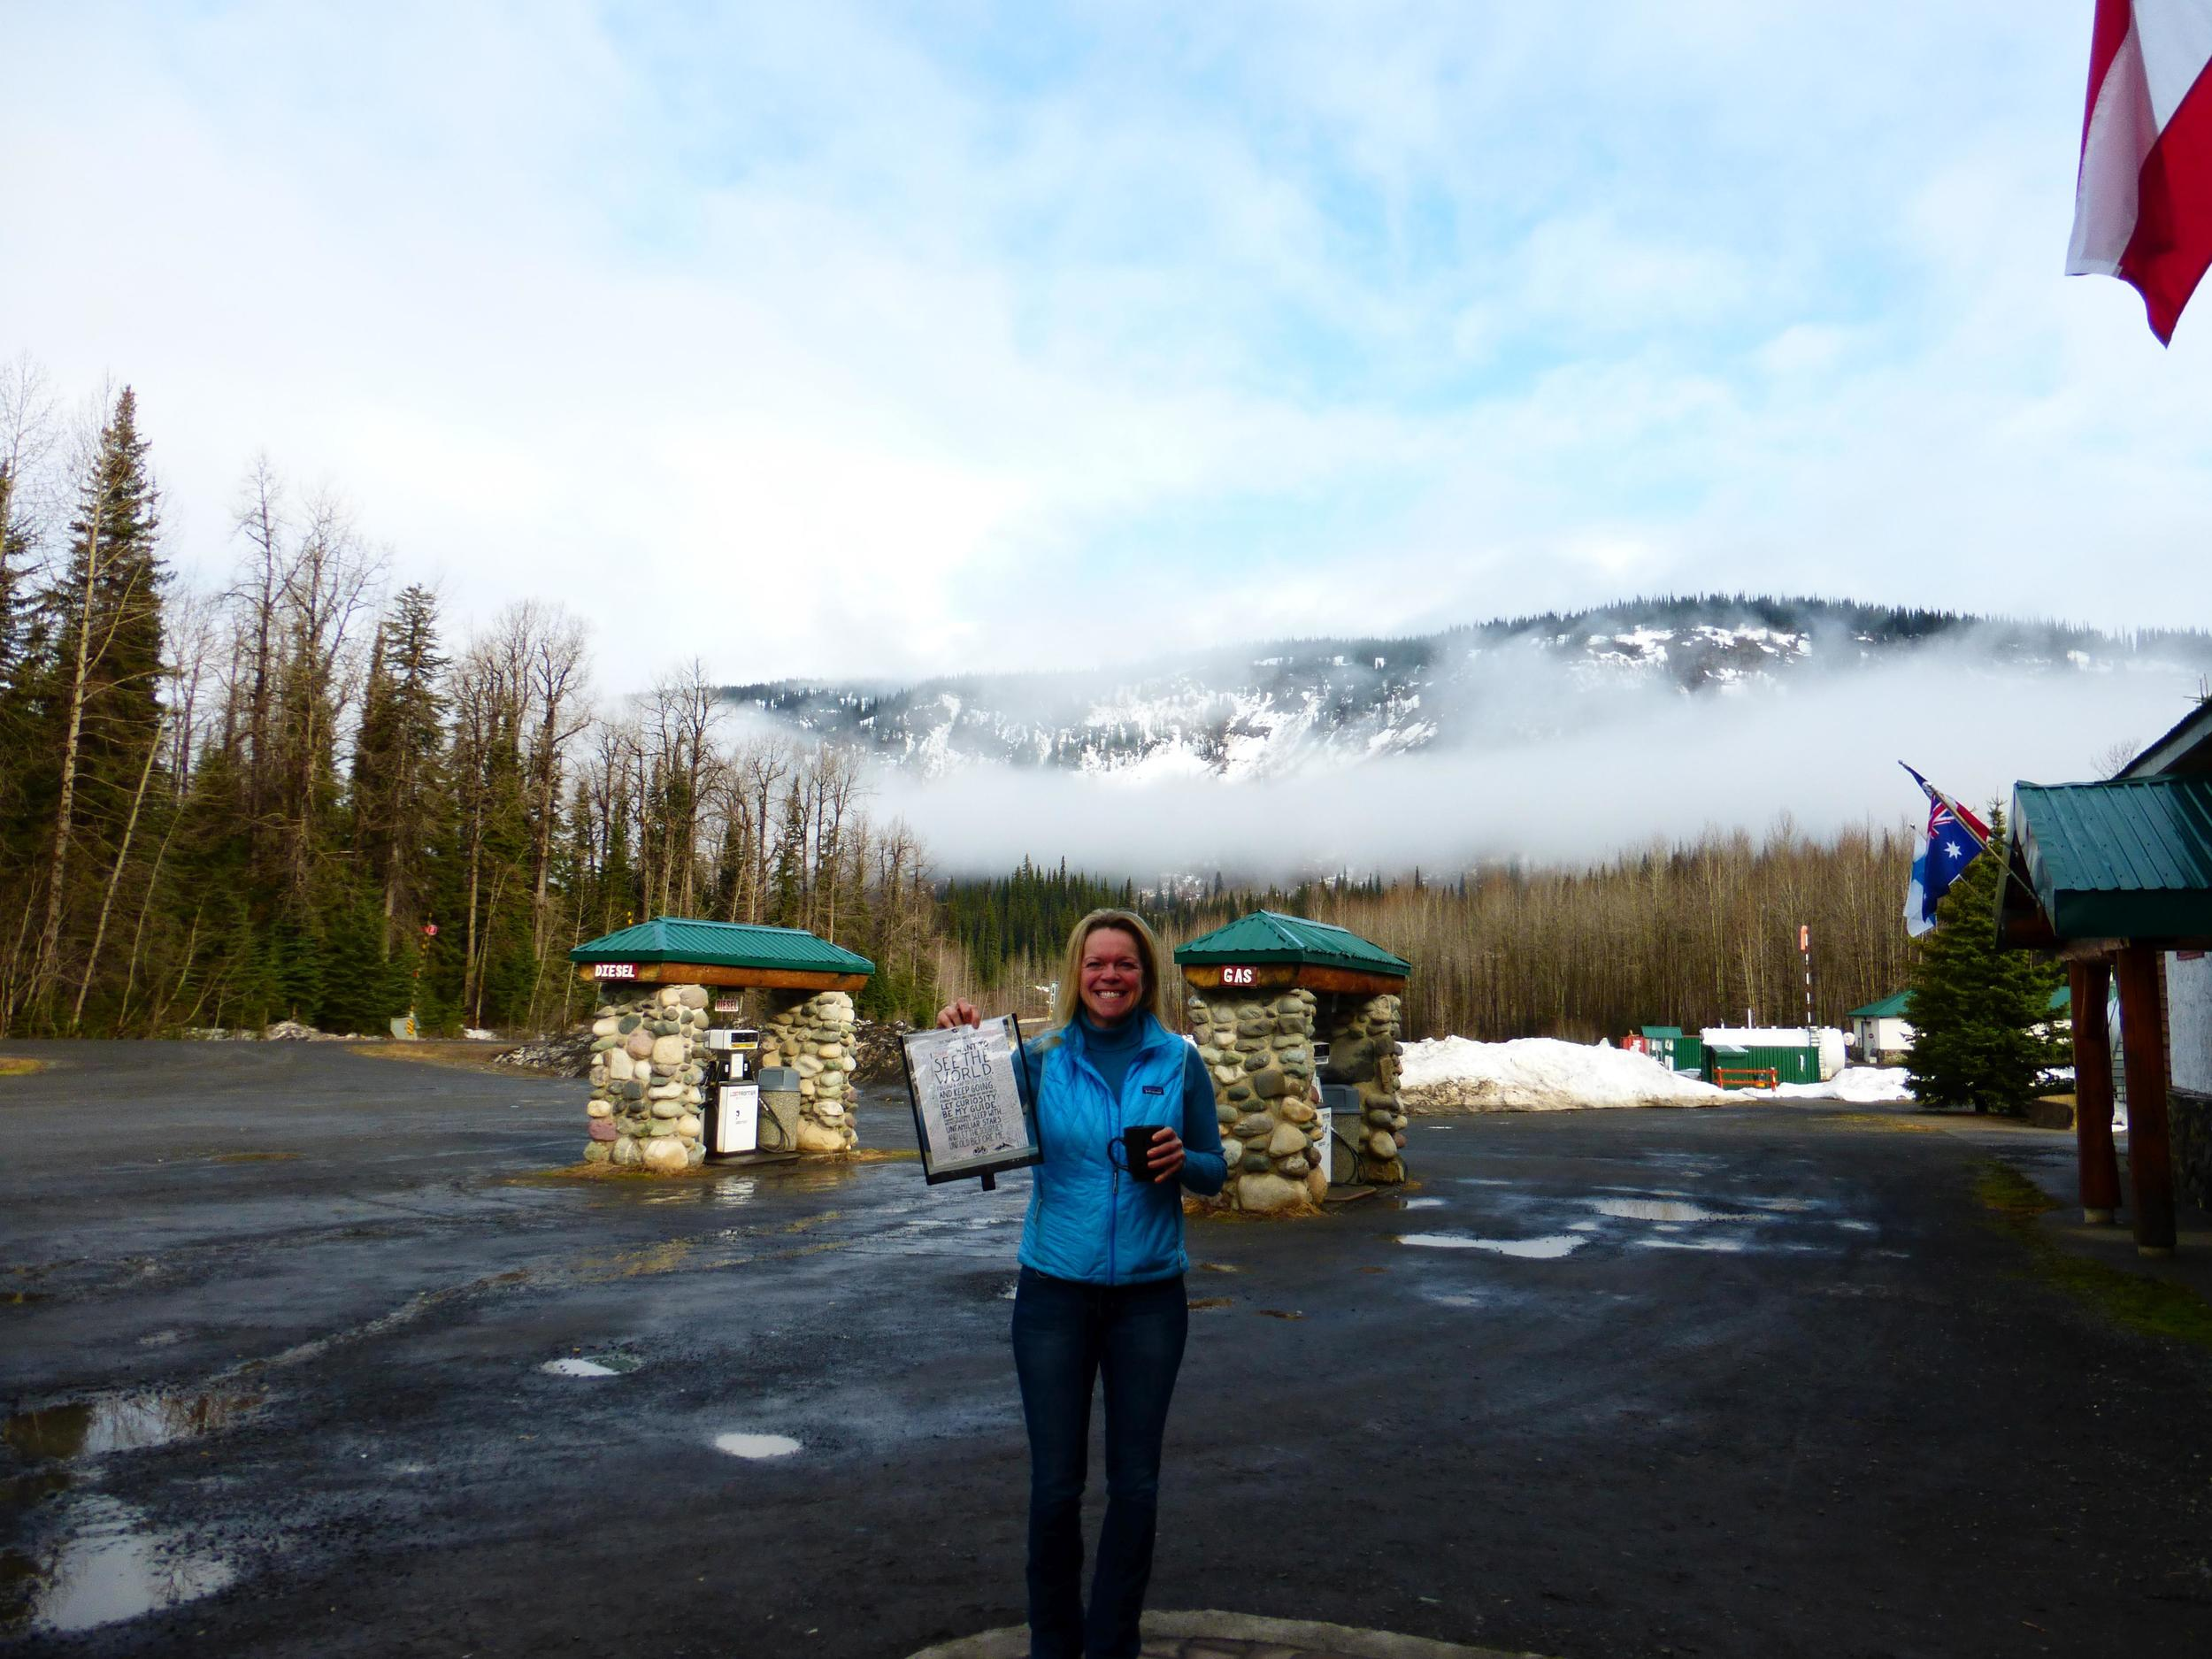 Nicole, originally from Alaska is now living in Prince Rupert, she was going to the Red Chris mine to do training.